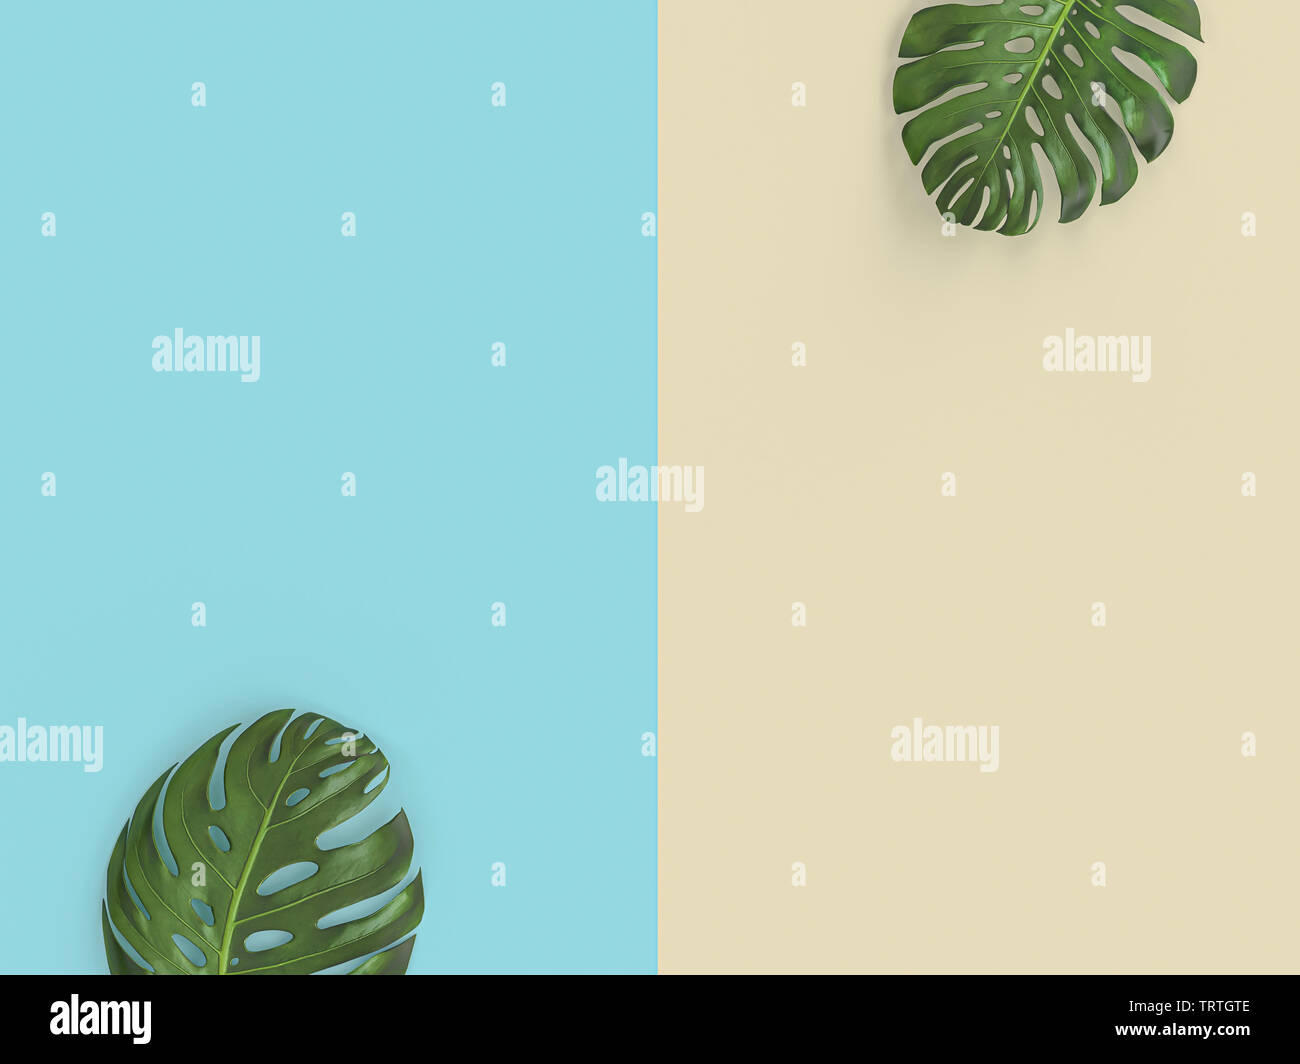 green leaves on two-tone background, 3d render image in flat lay style. - Stock Image